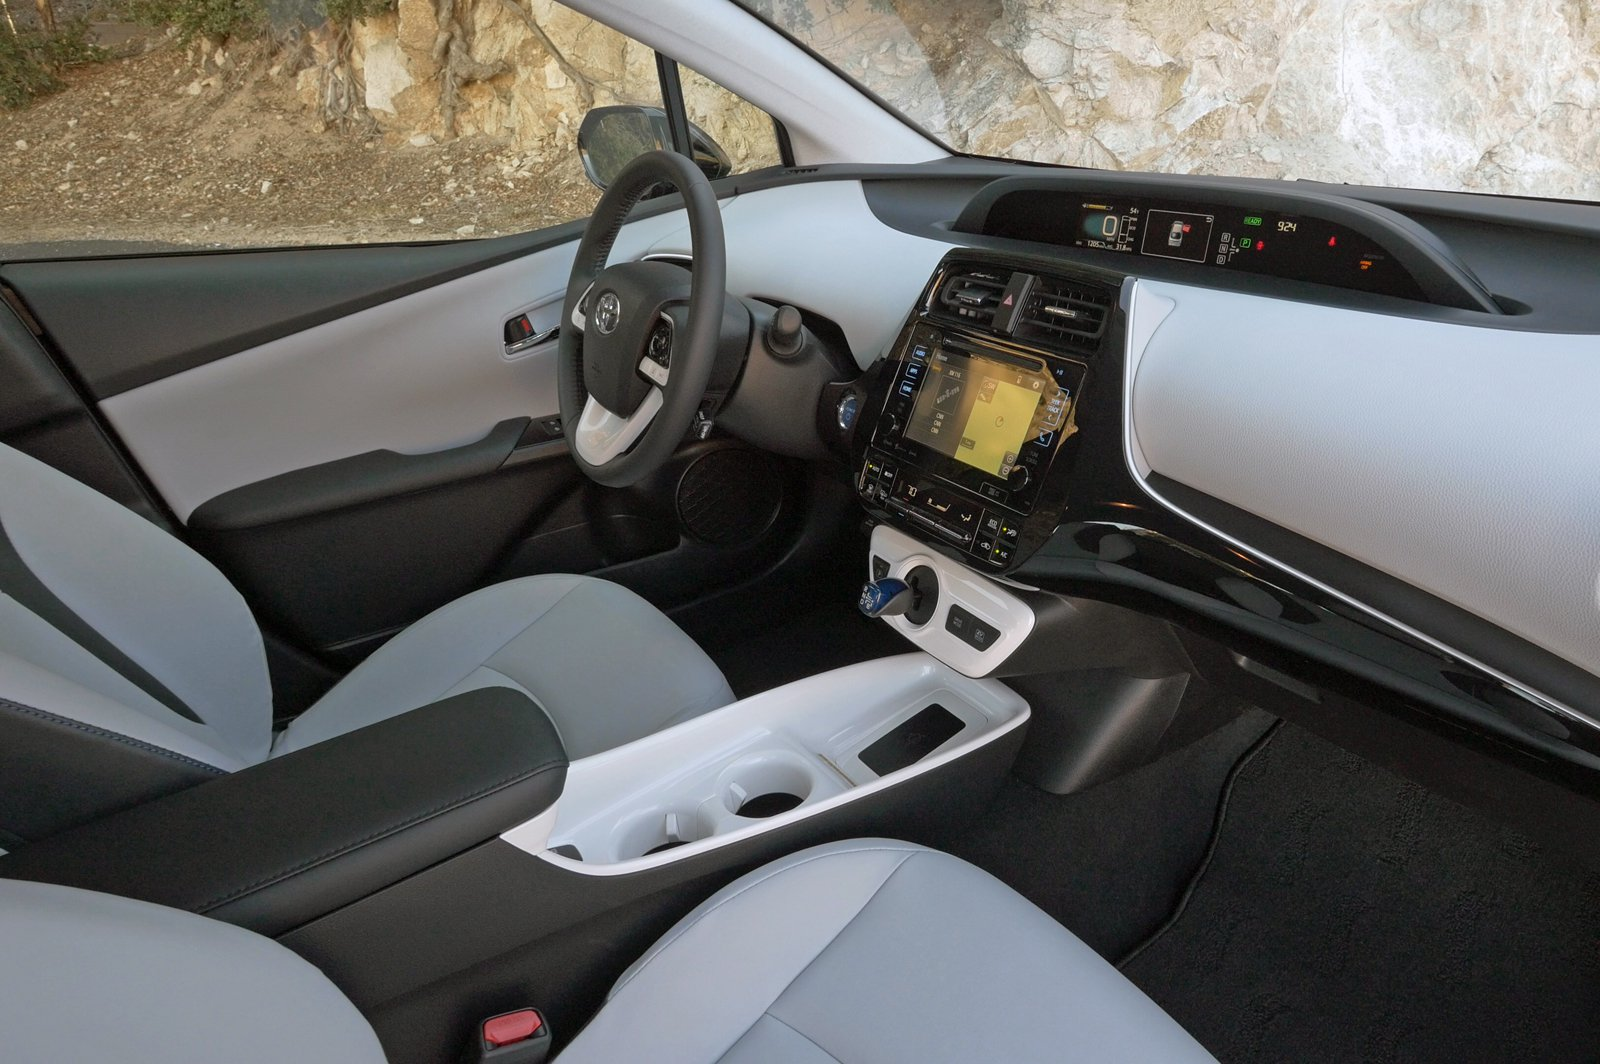 astonishing-design-of-the-toyota-prius-2016-interior-with-grey-and-black-seats-added-with-grey-dash-ideas